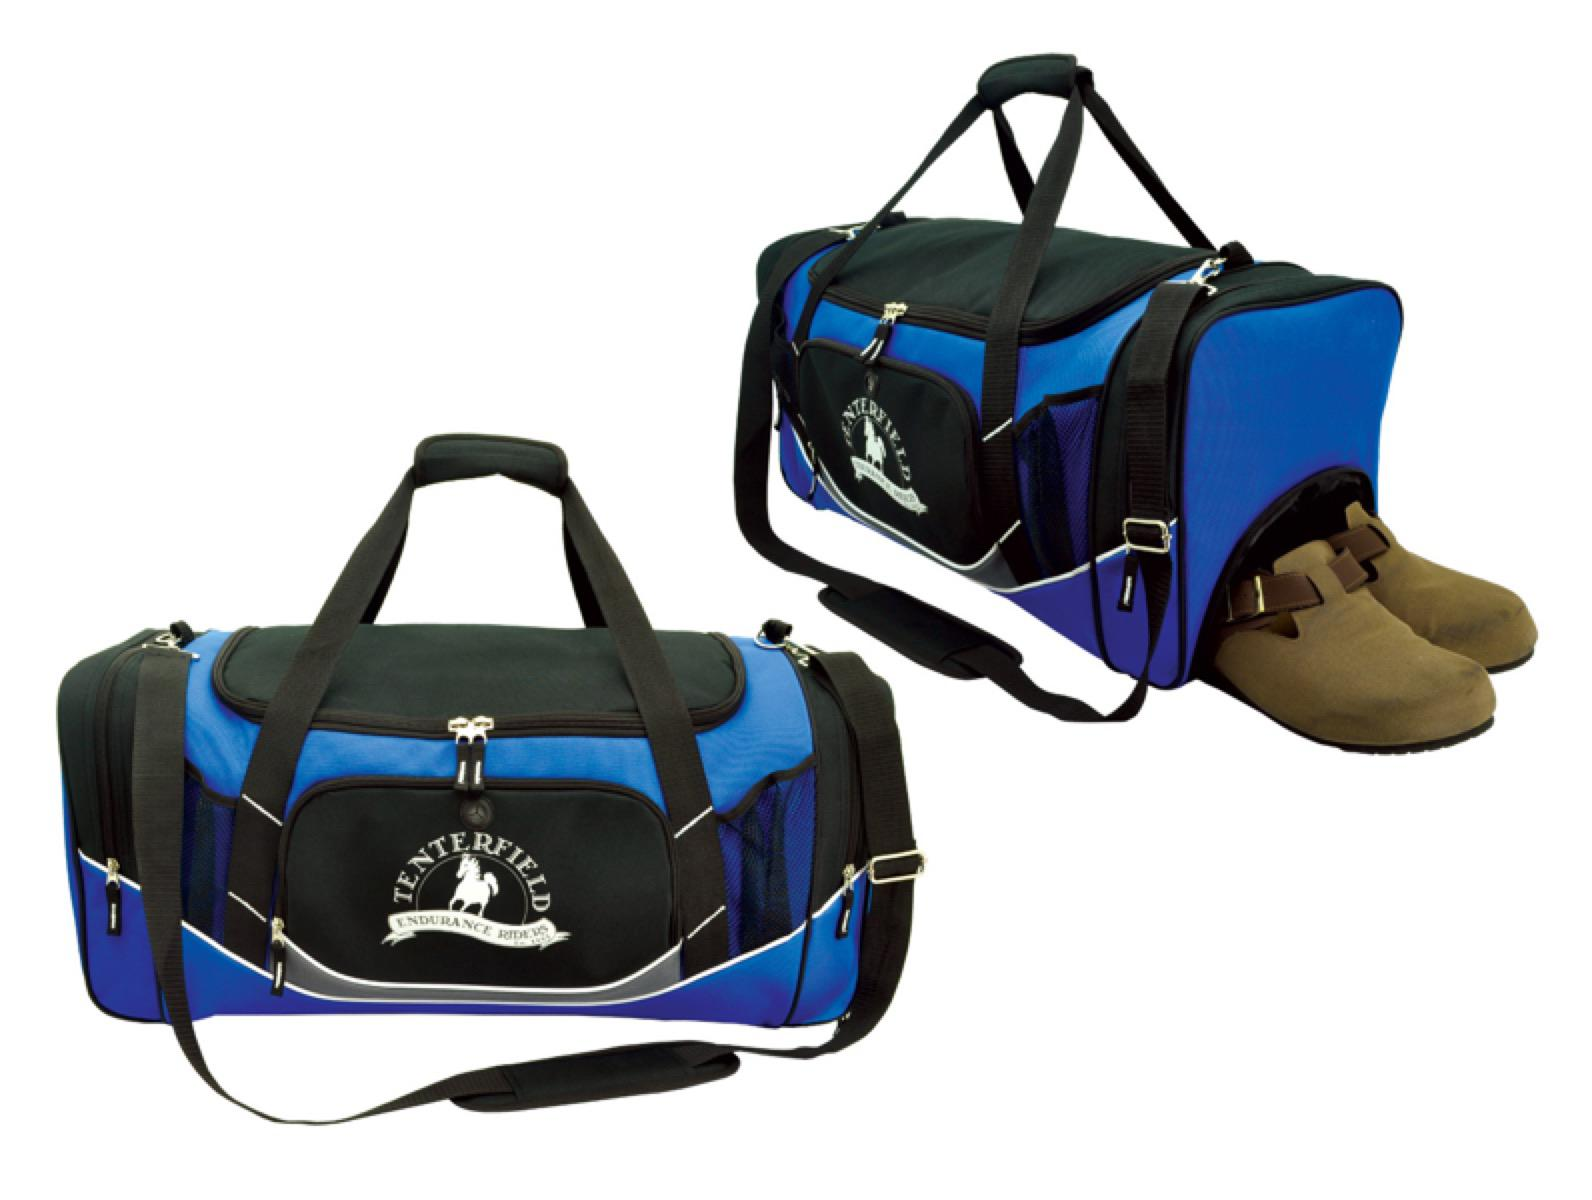 Atlantis Sports Bag, From 19.55